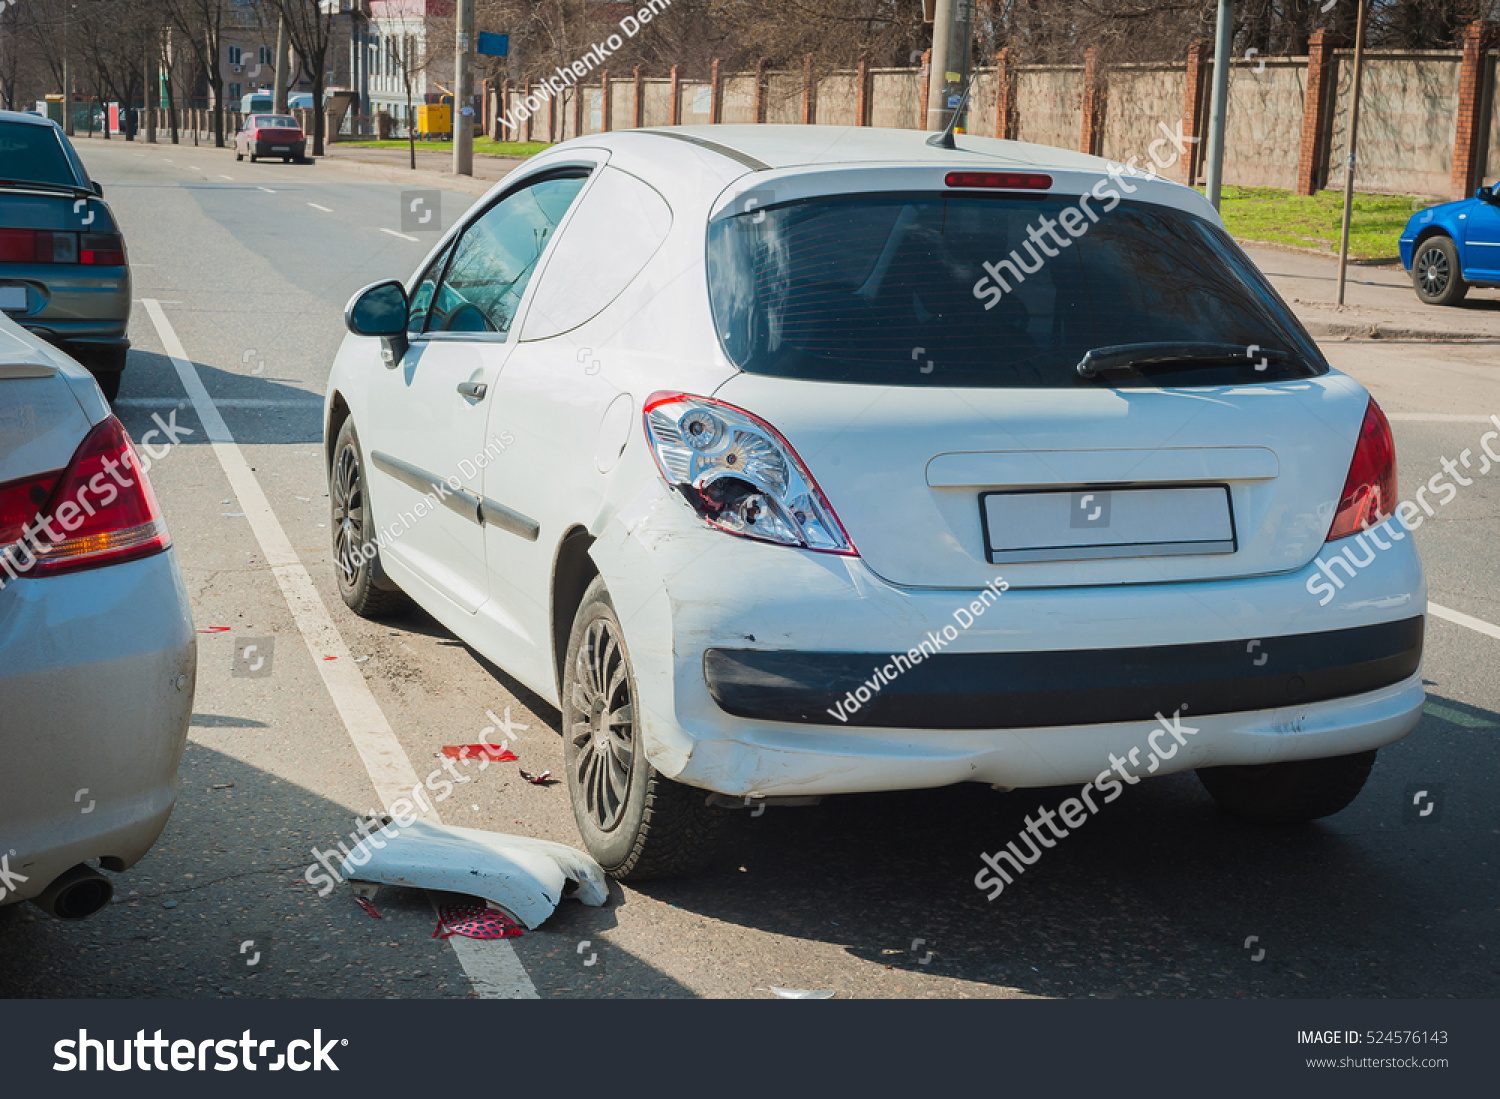 car crash accident on street damaged stock photo (edit now